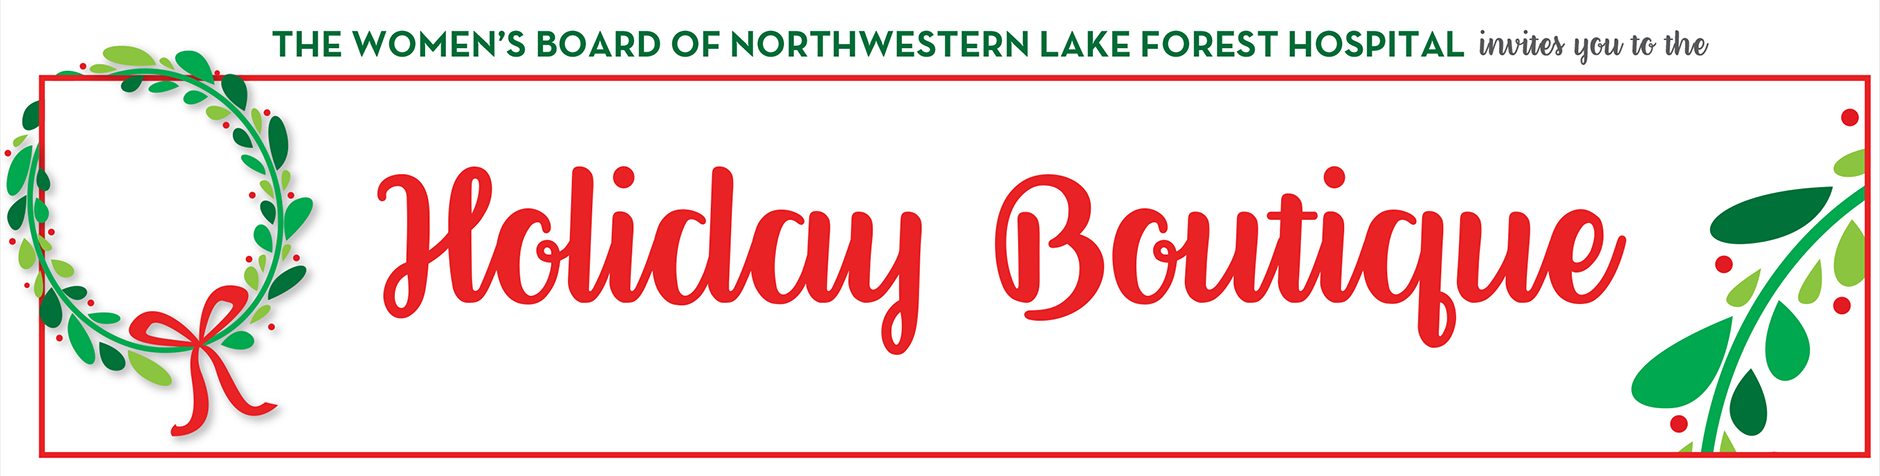 Women's Board of Northwestern Lake Forest Hospital Holiday Boutique